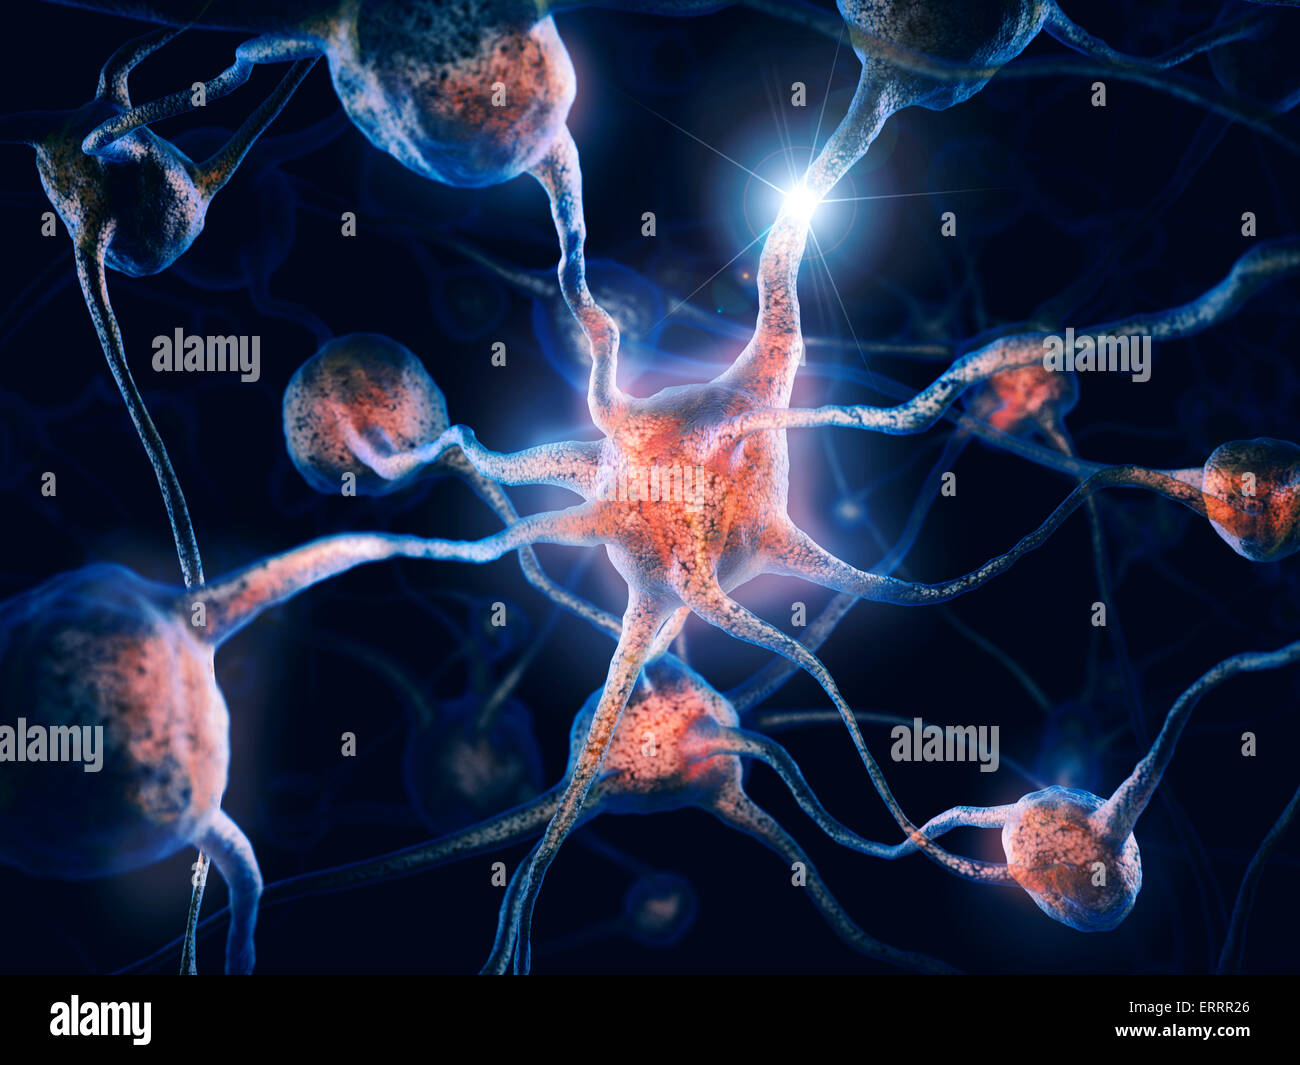 Network of neurons and neural connections, Brain cells, scientific conceptual 3D illustration - Stock Image